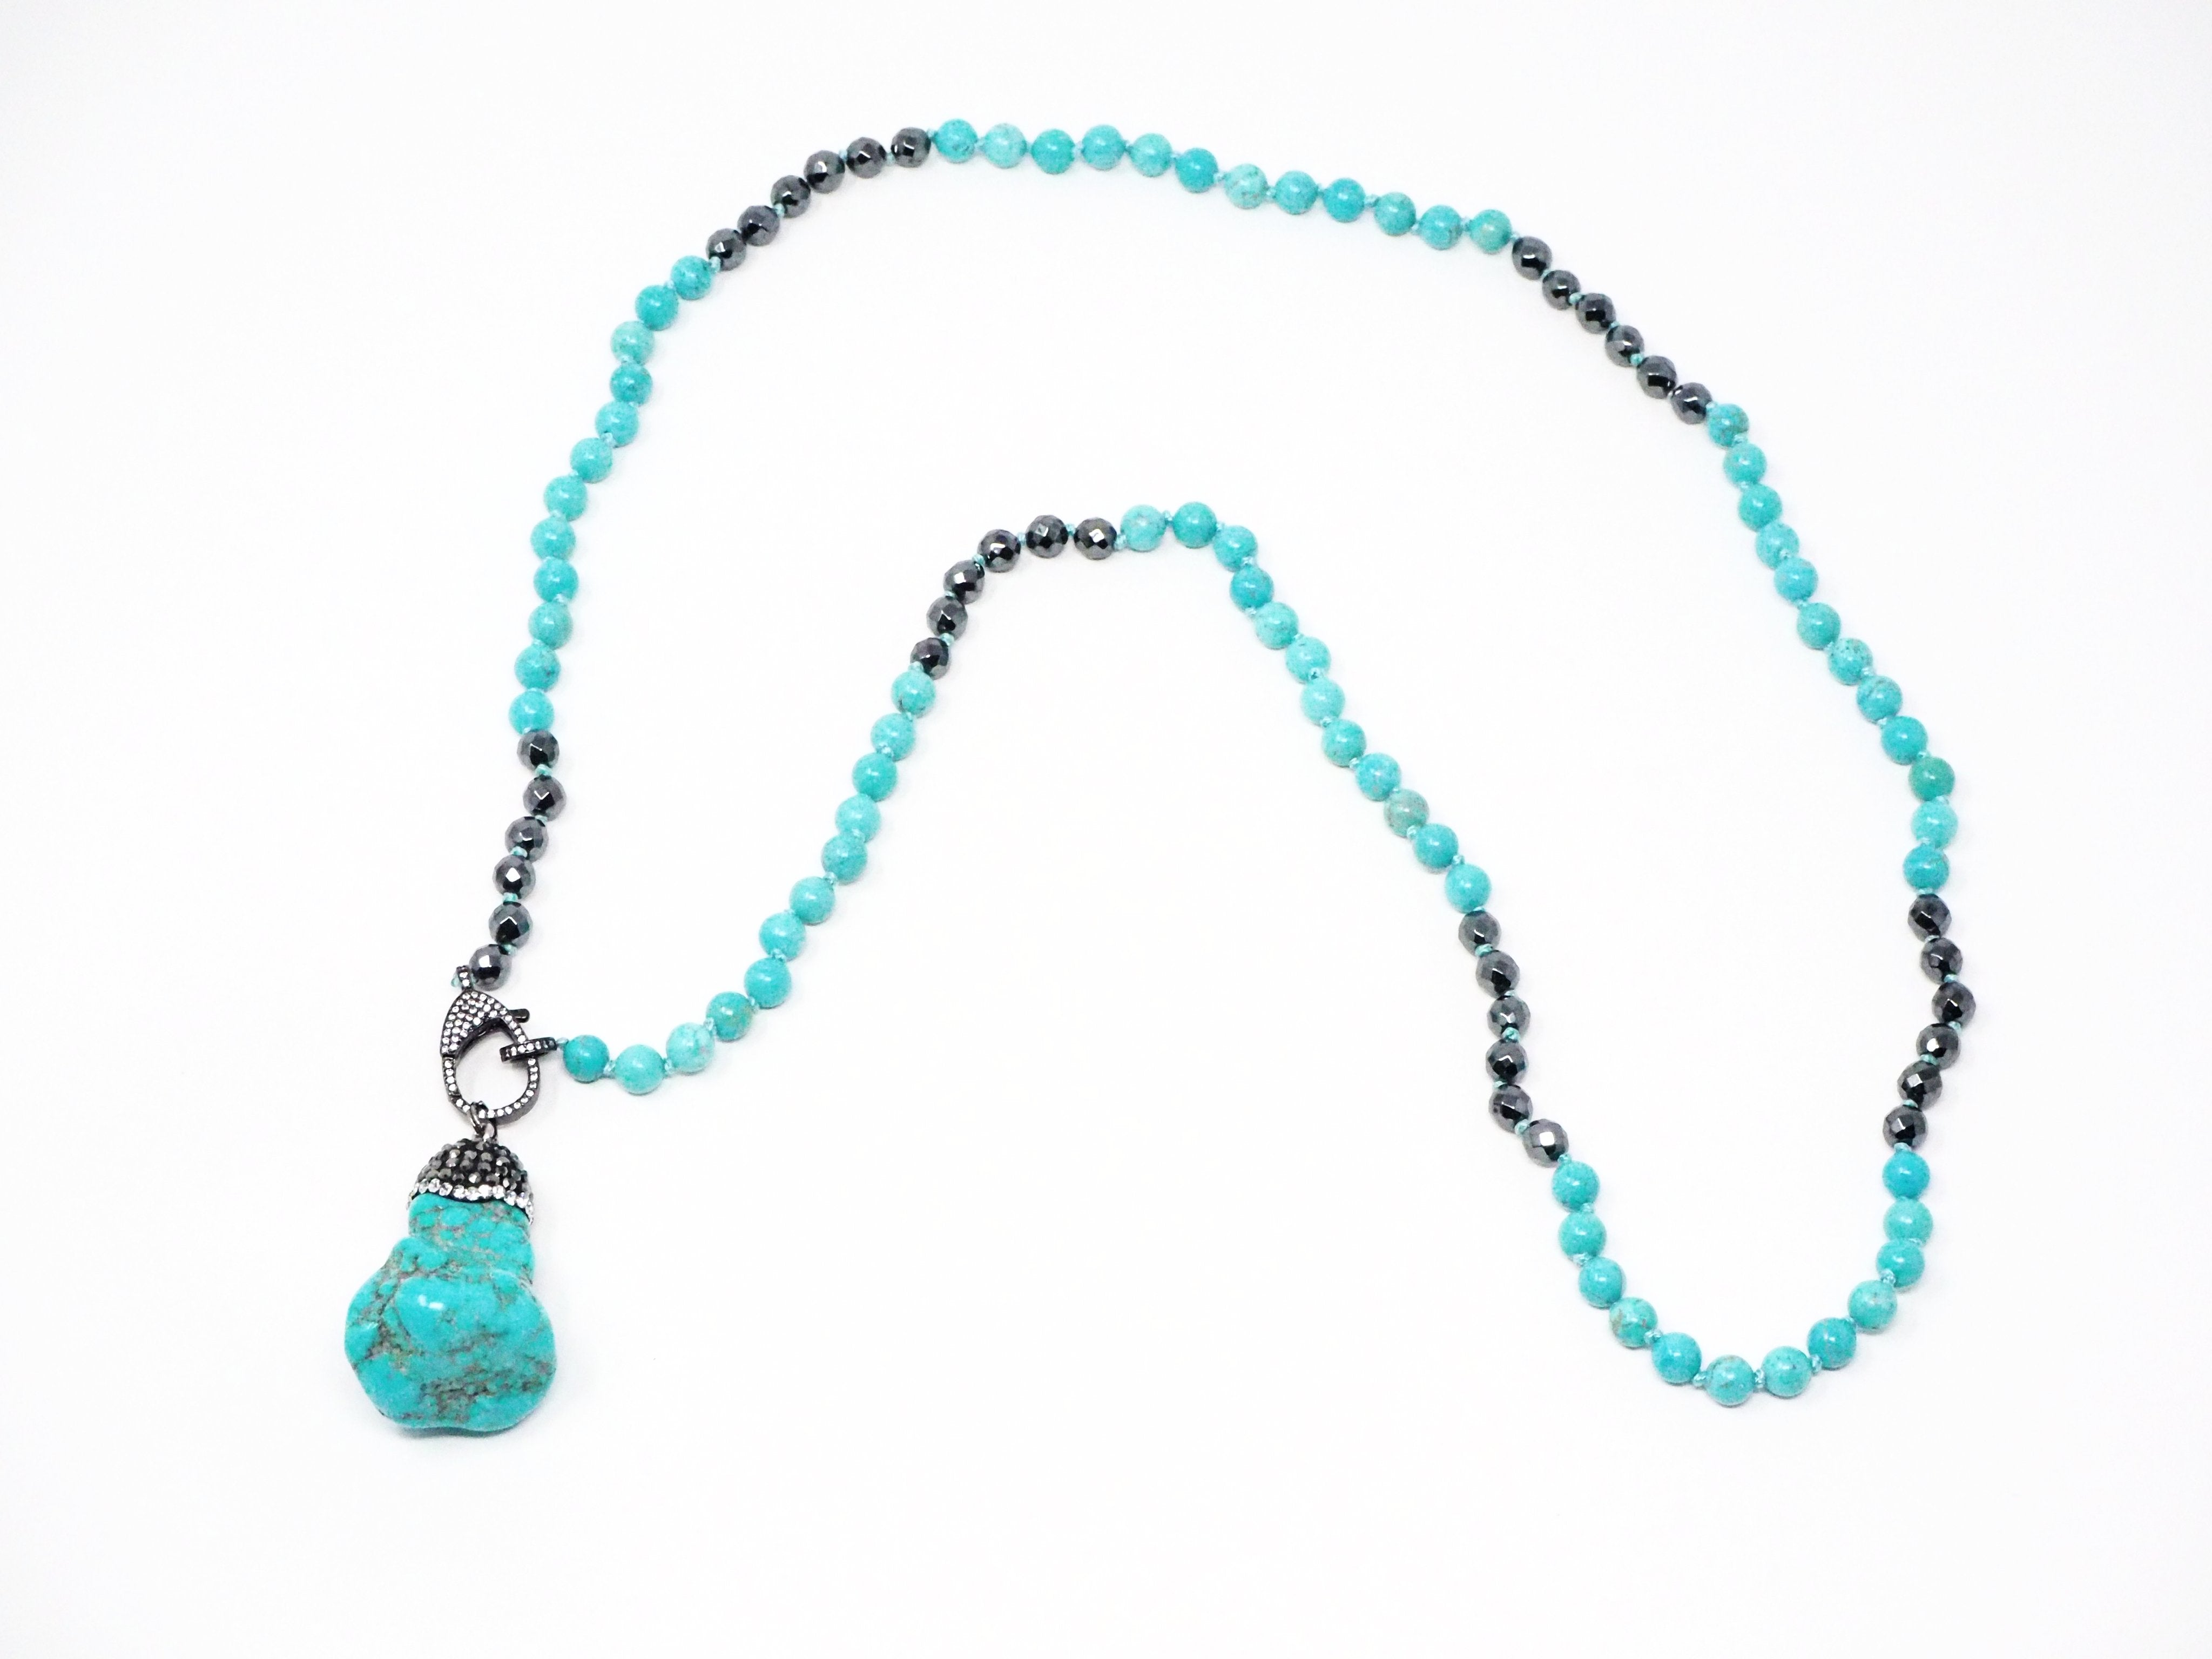 turquoise chain, turquoise necklace, turquoise flower, turquoise and crystal, turquoise style, turquoise pendant, turquoise jewelry